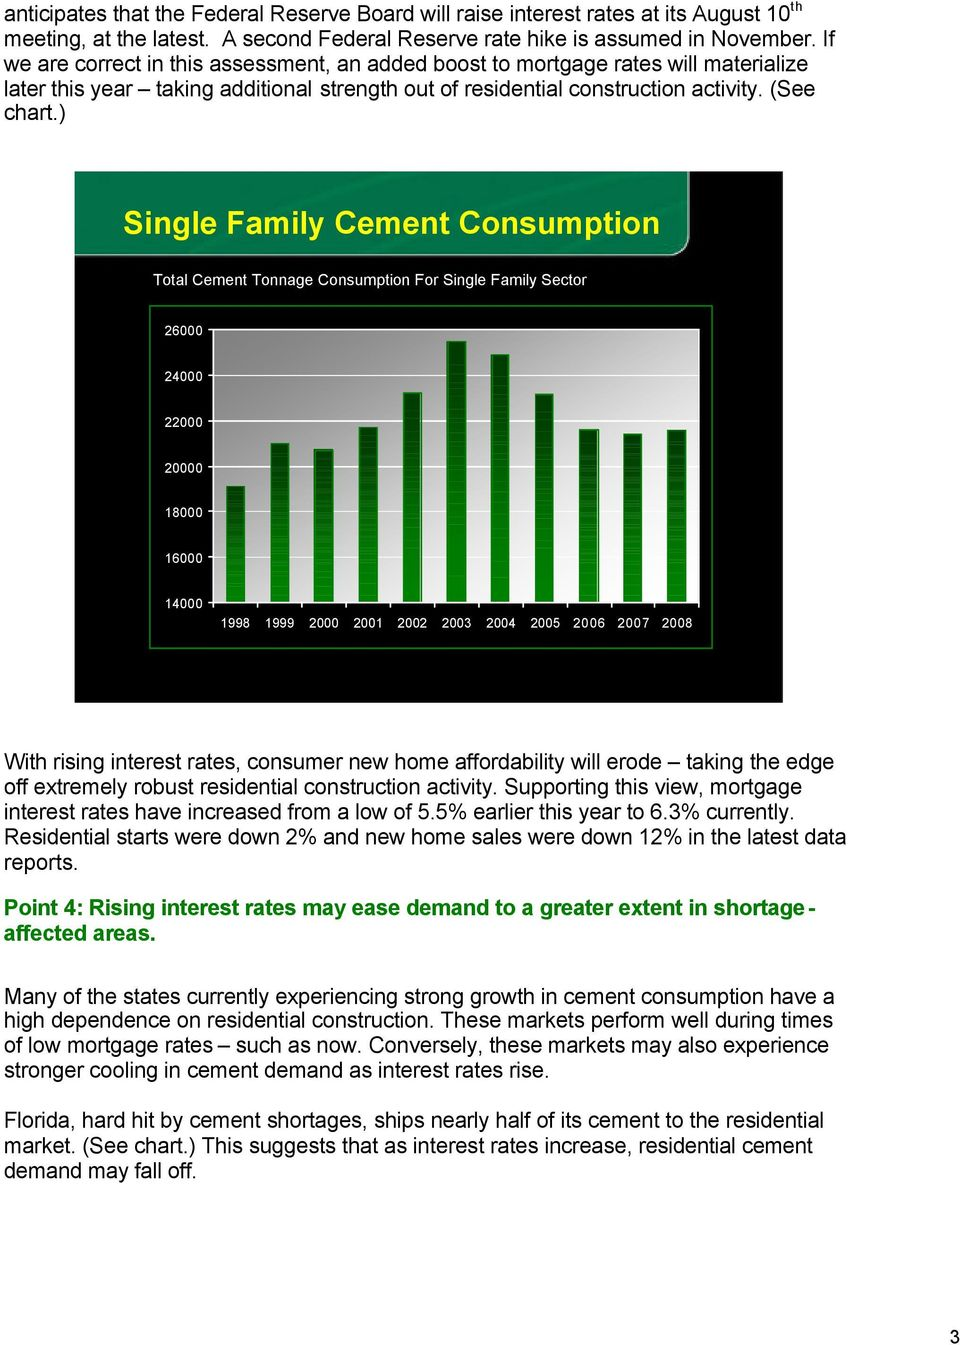 ) Single Family Cement Consumption Total Cement Tonnage Consumption For Single Family Sector 26000 24000 22000 20000 18000 16000 14000 1998 1999 2000 2001 2002 2003 2004 2005 2006 2007 2008 With